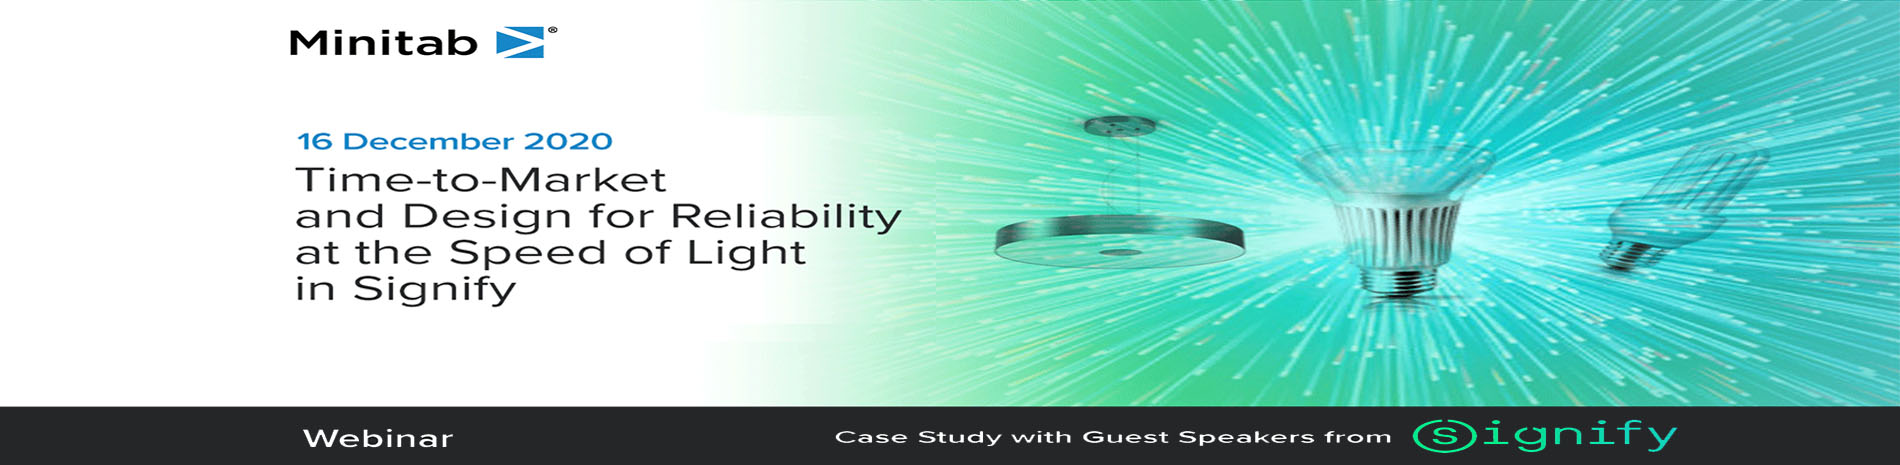 Time-to-Market and Design for Reliability at the Speed of Light in Signify: Case Study